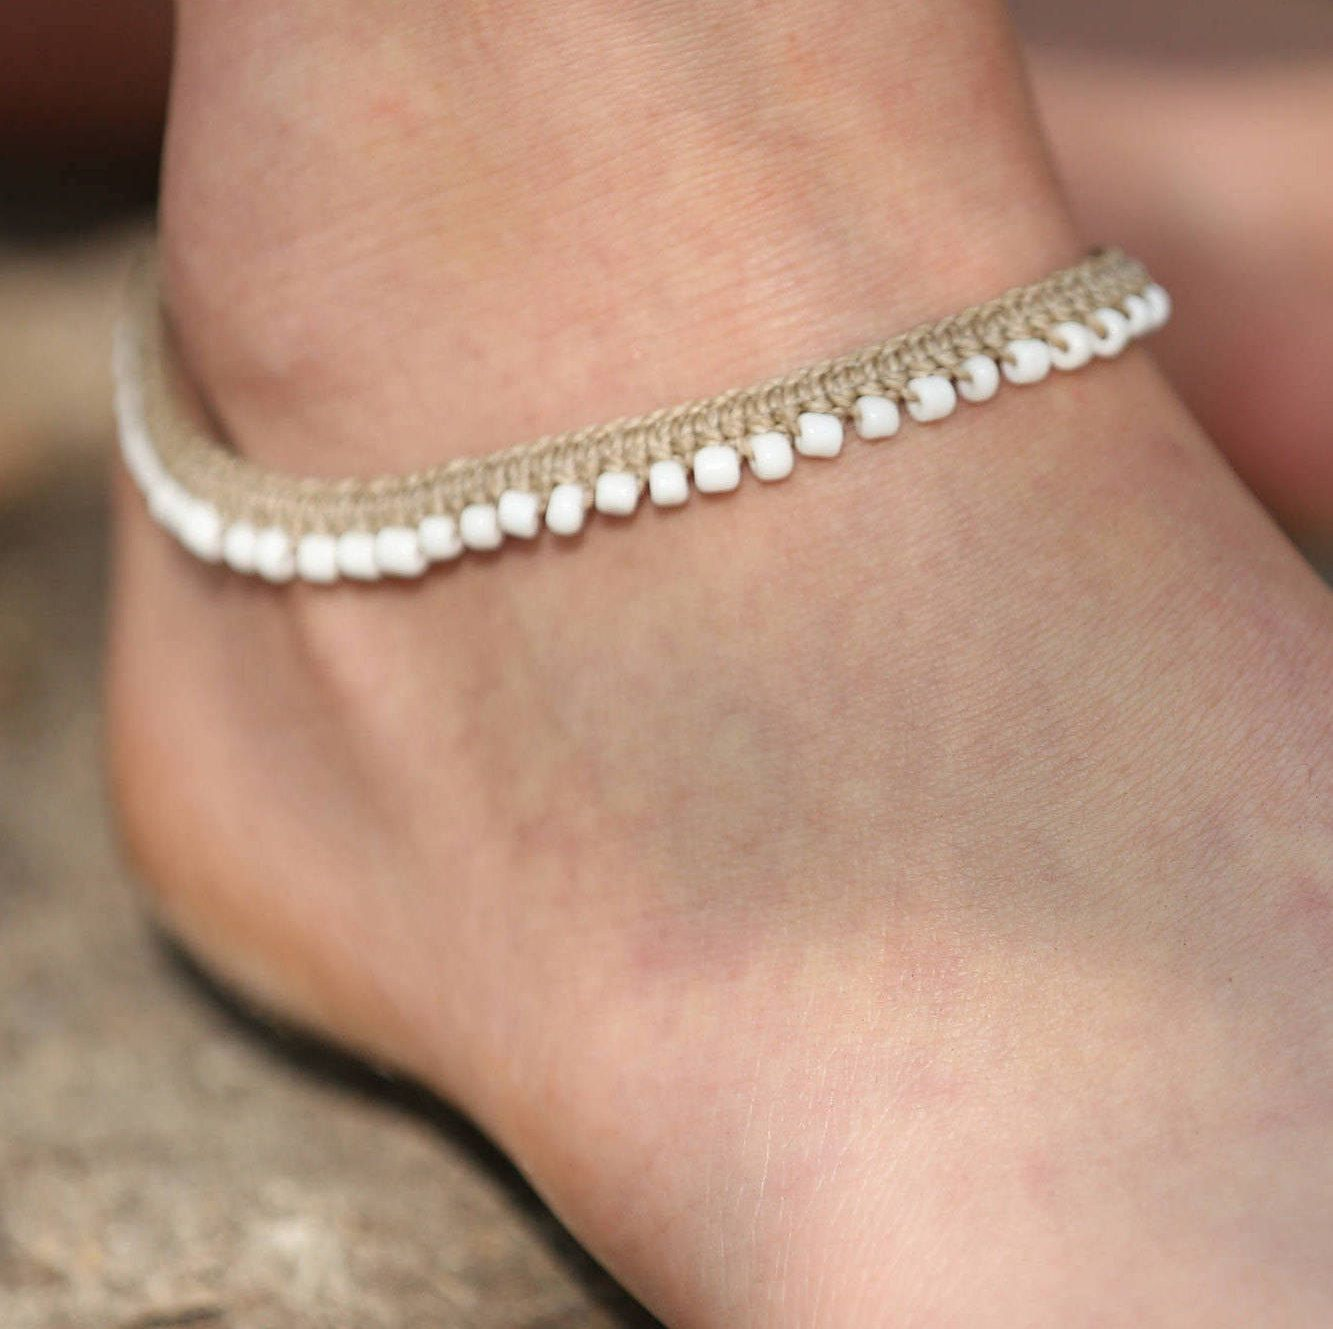 c en summer gift anklet body for beach bracelet her etsy ankle il jewelry starfish fashion sg girlfriend anklets gold